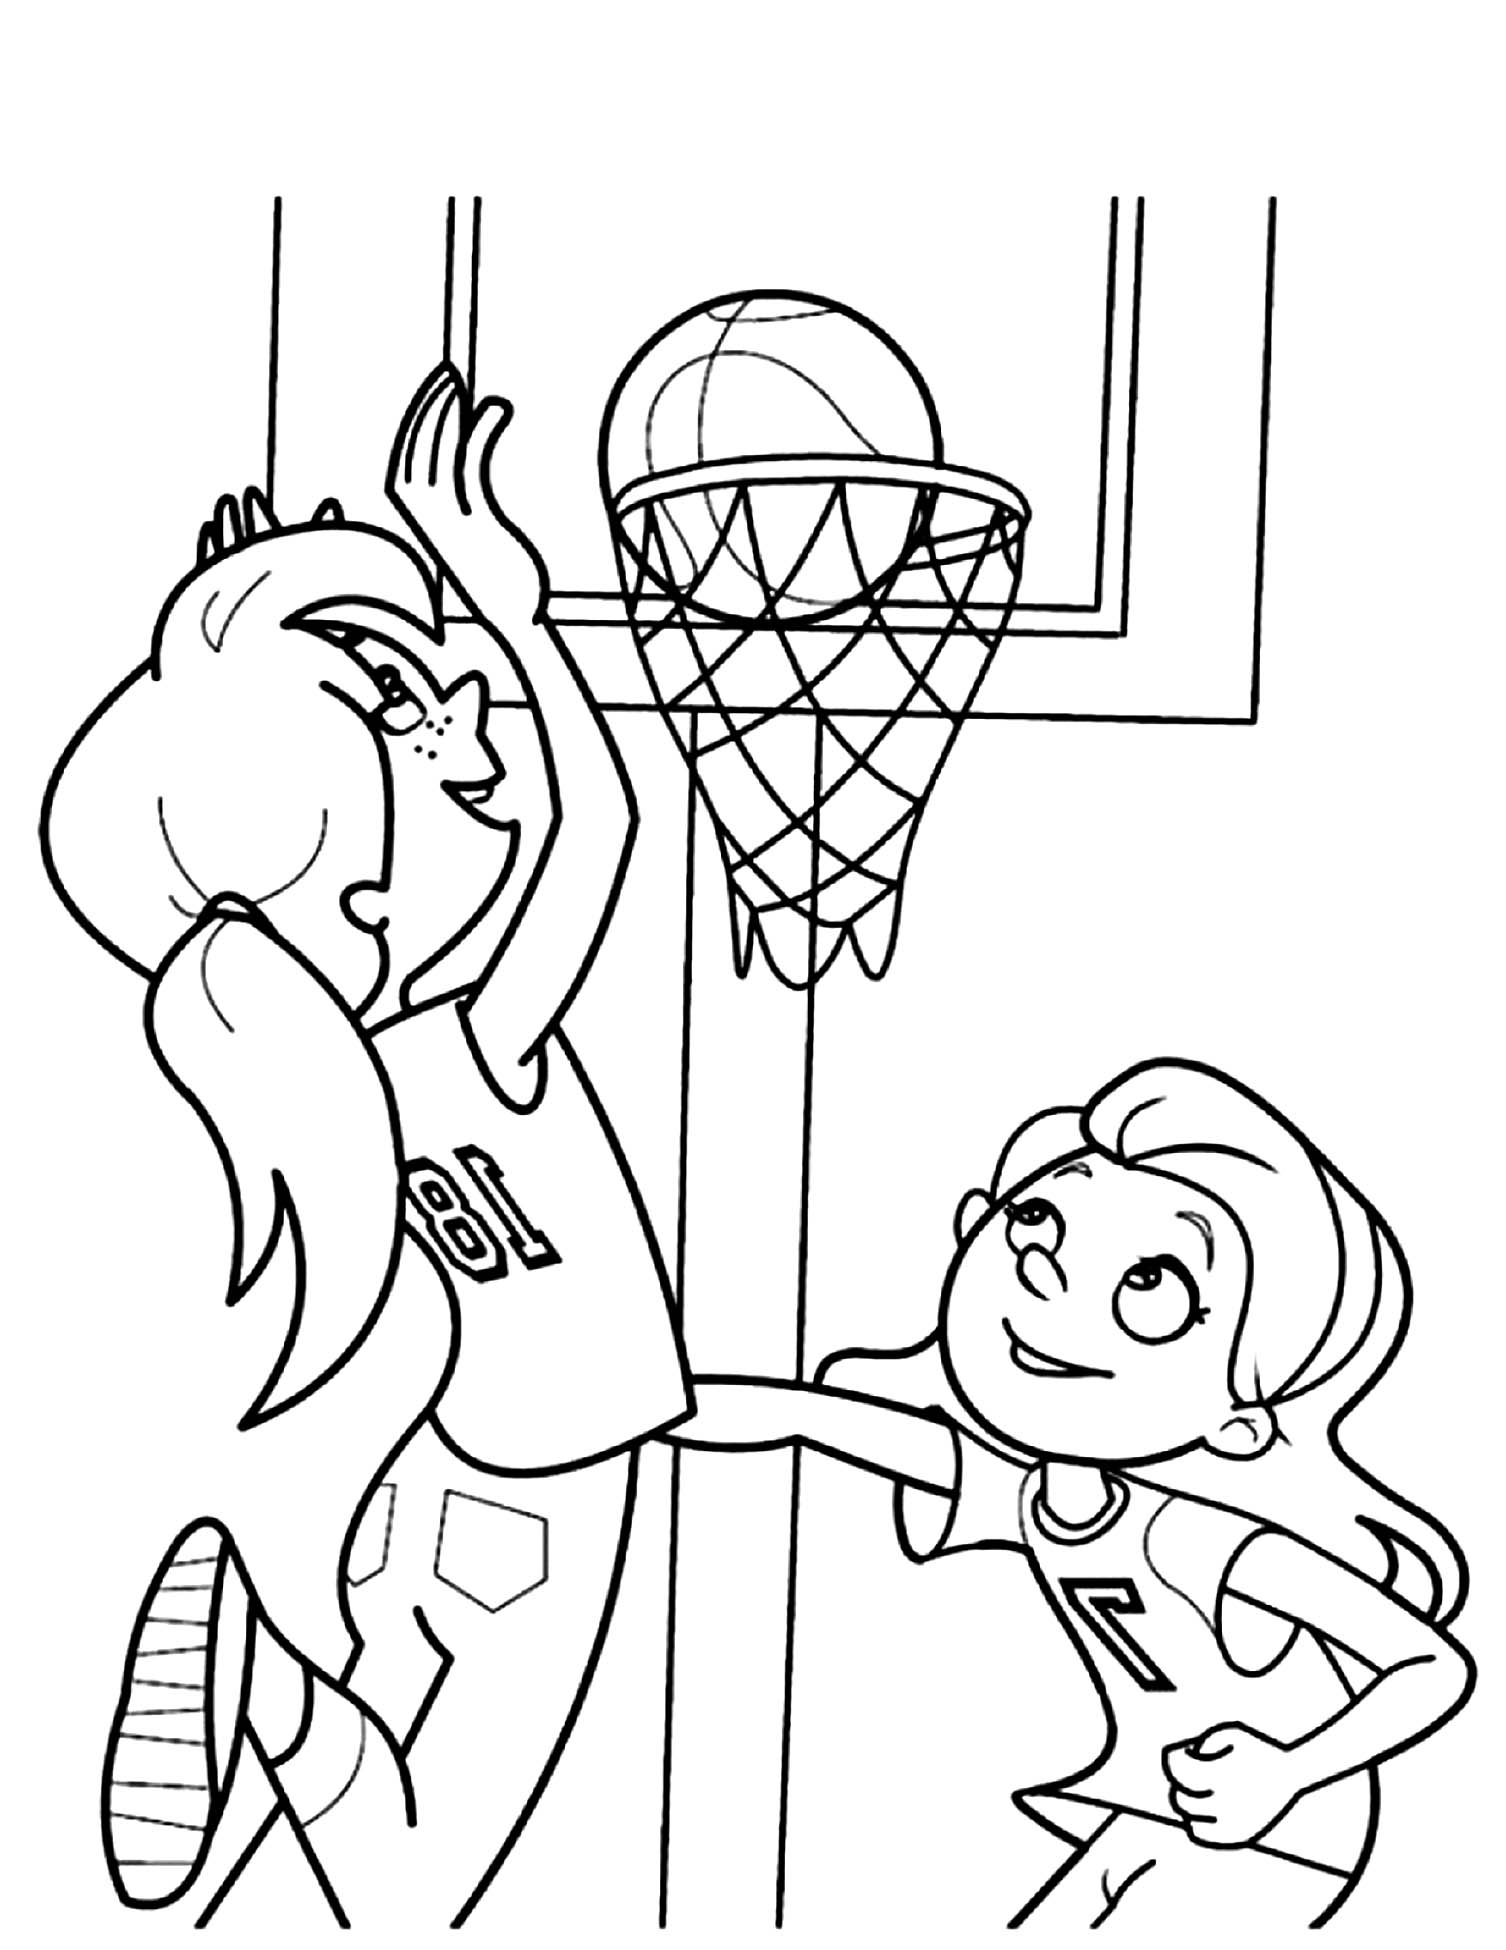 basketball pictures to color free and fun basketball color pages for kids 101 activity pictures basketball color to